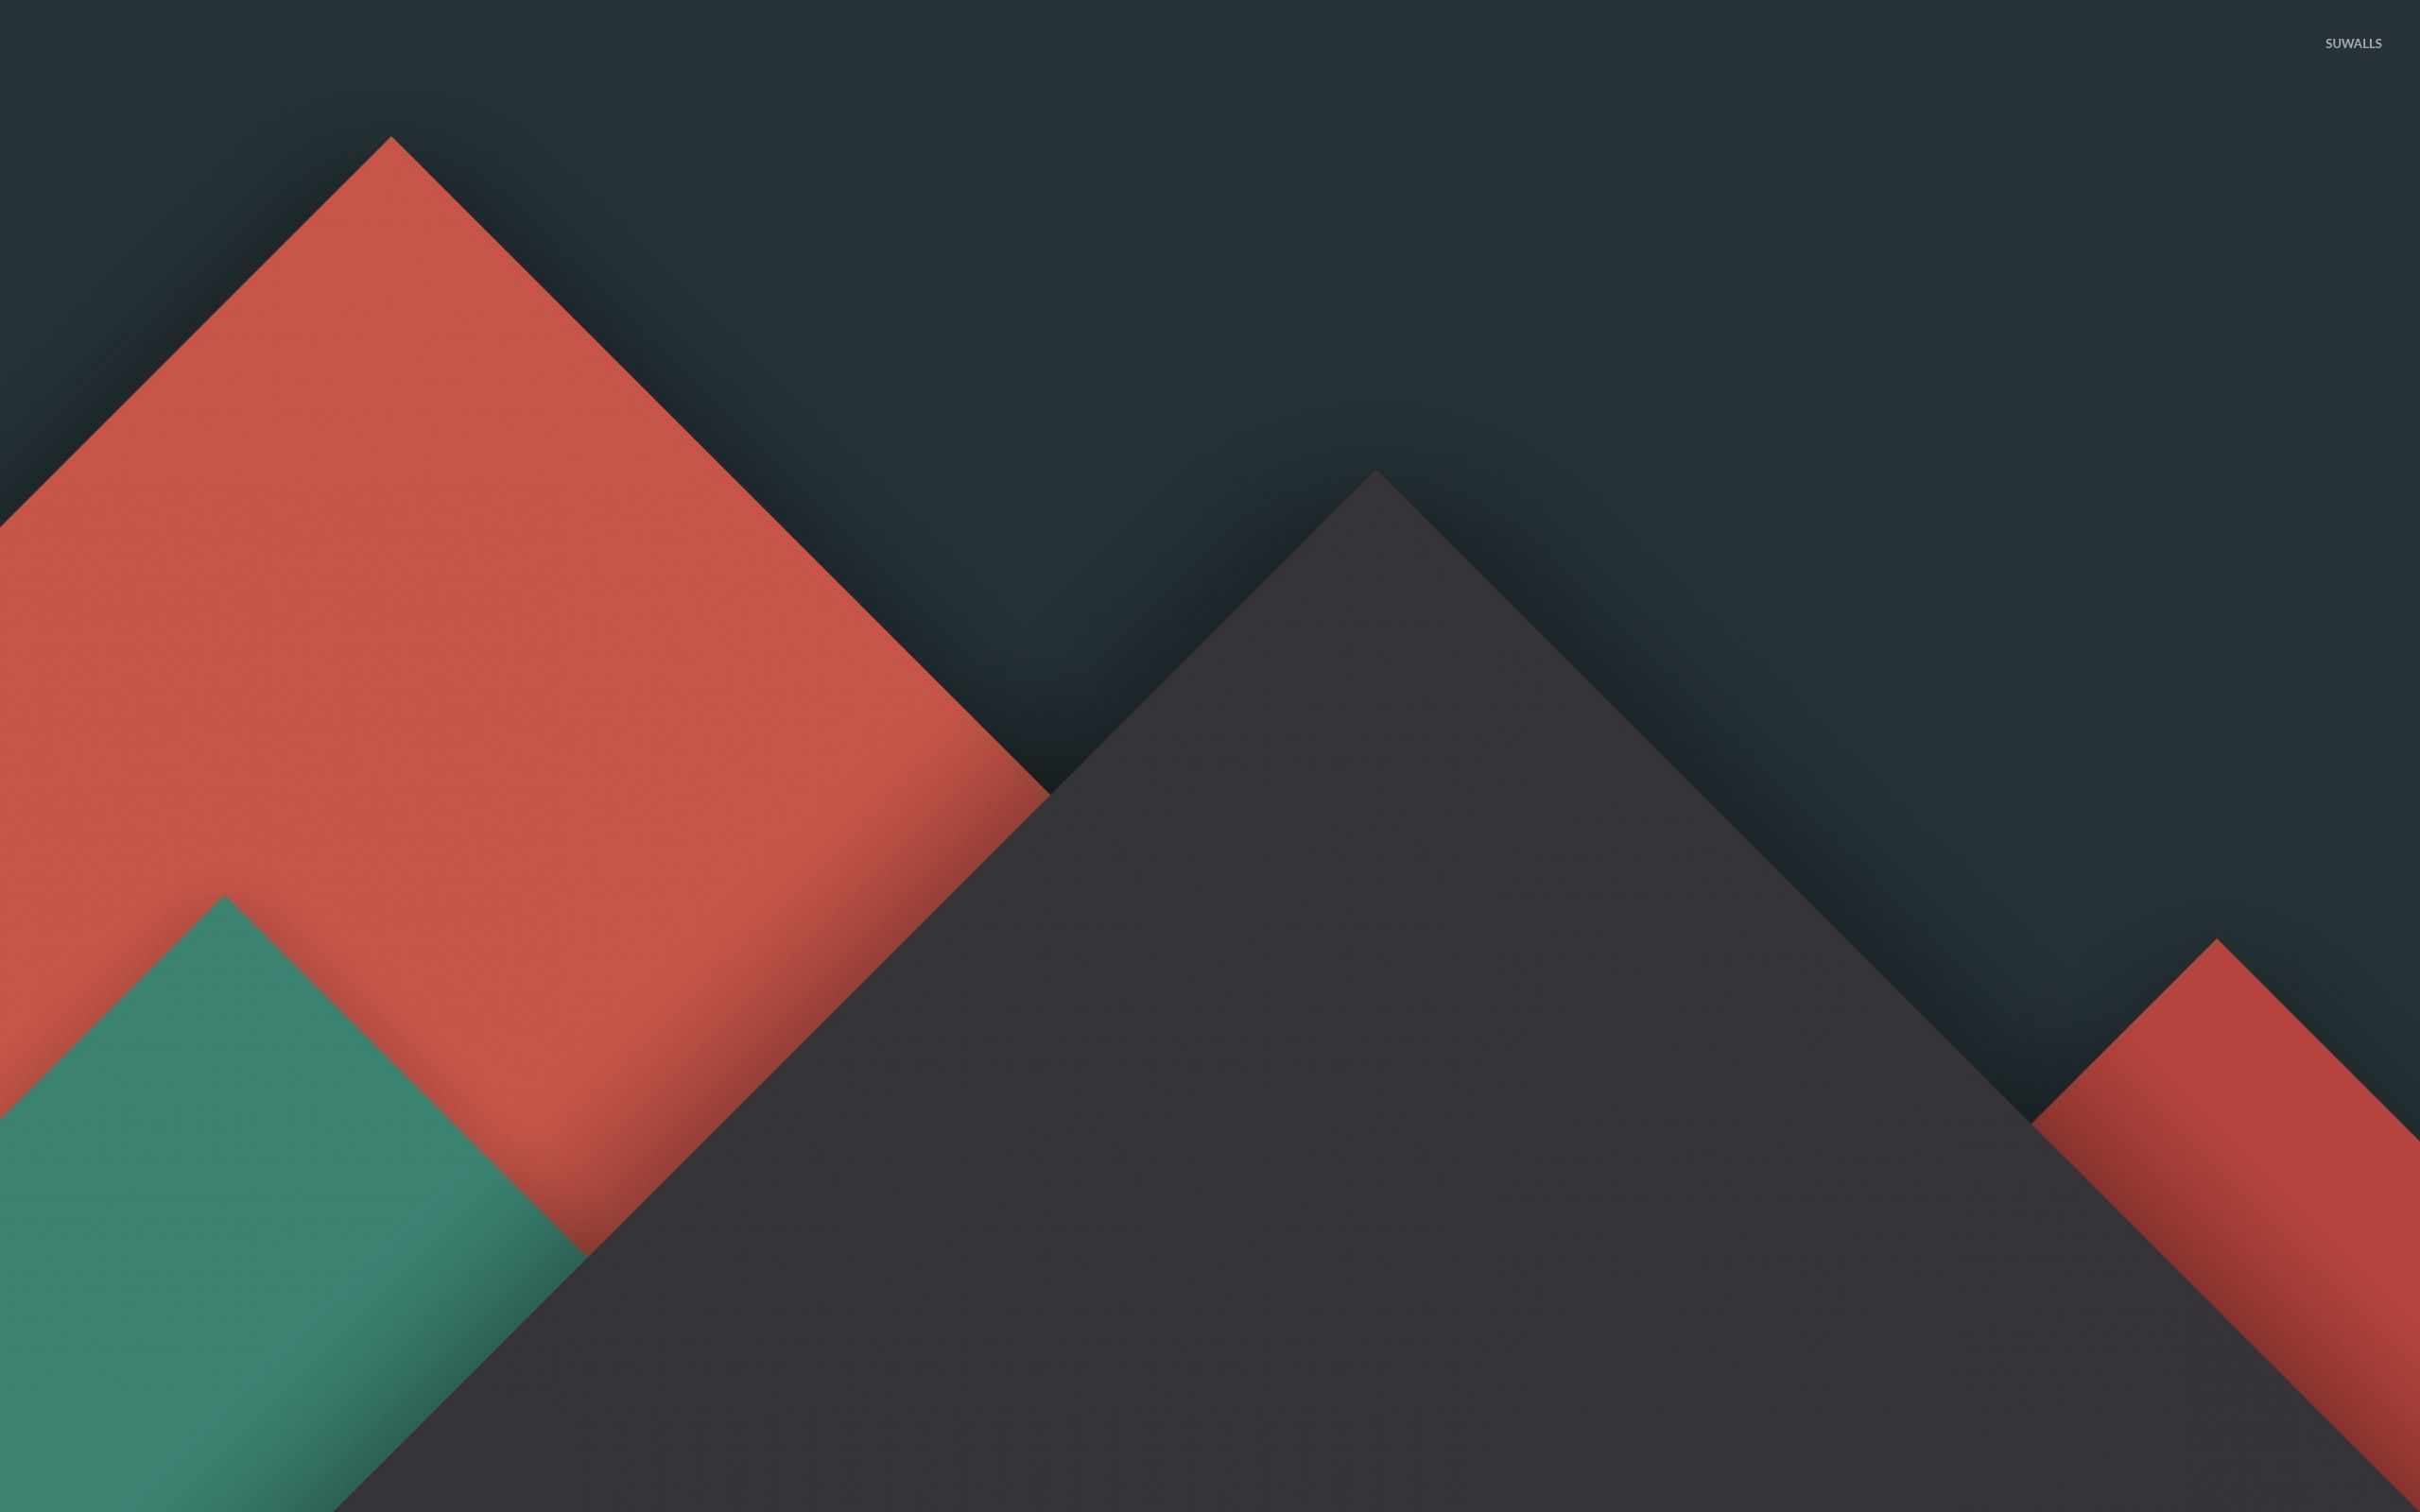 Shapes [8] wallpaper - Abstract wallpapers - #46293